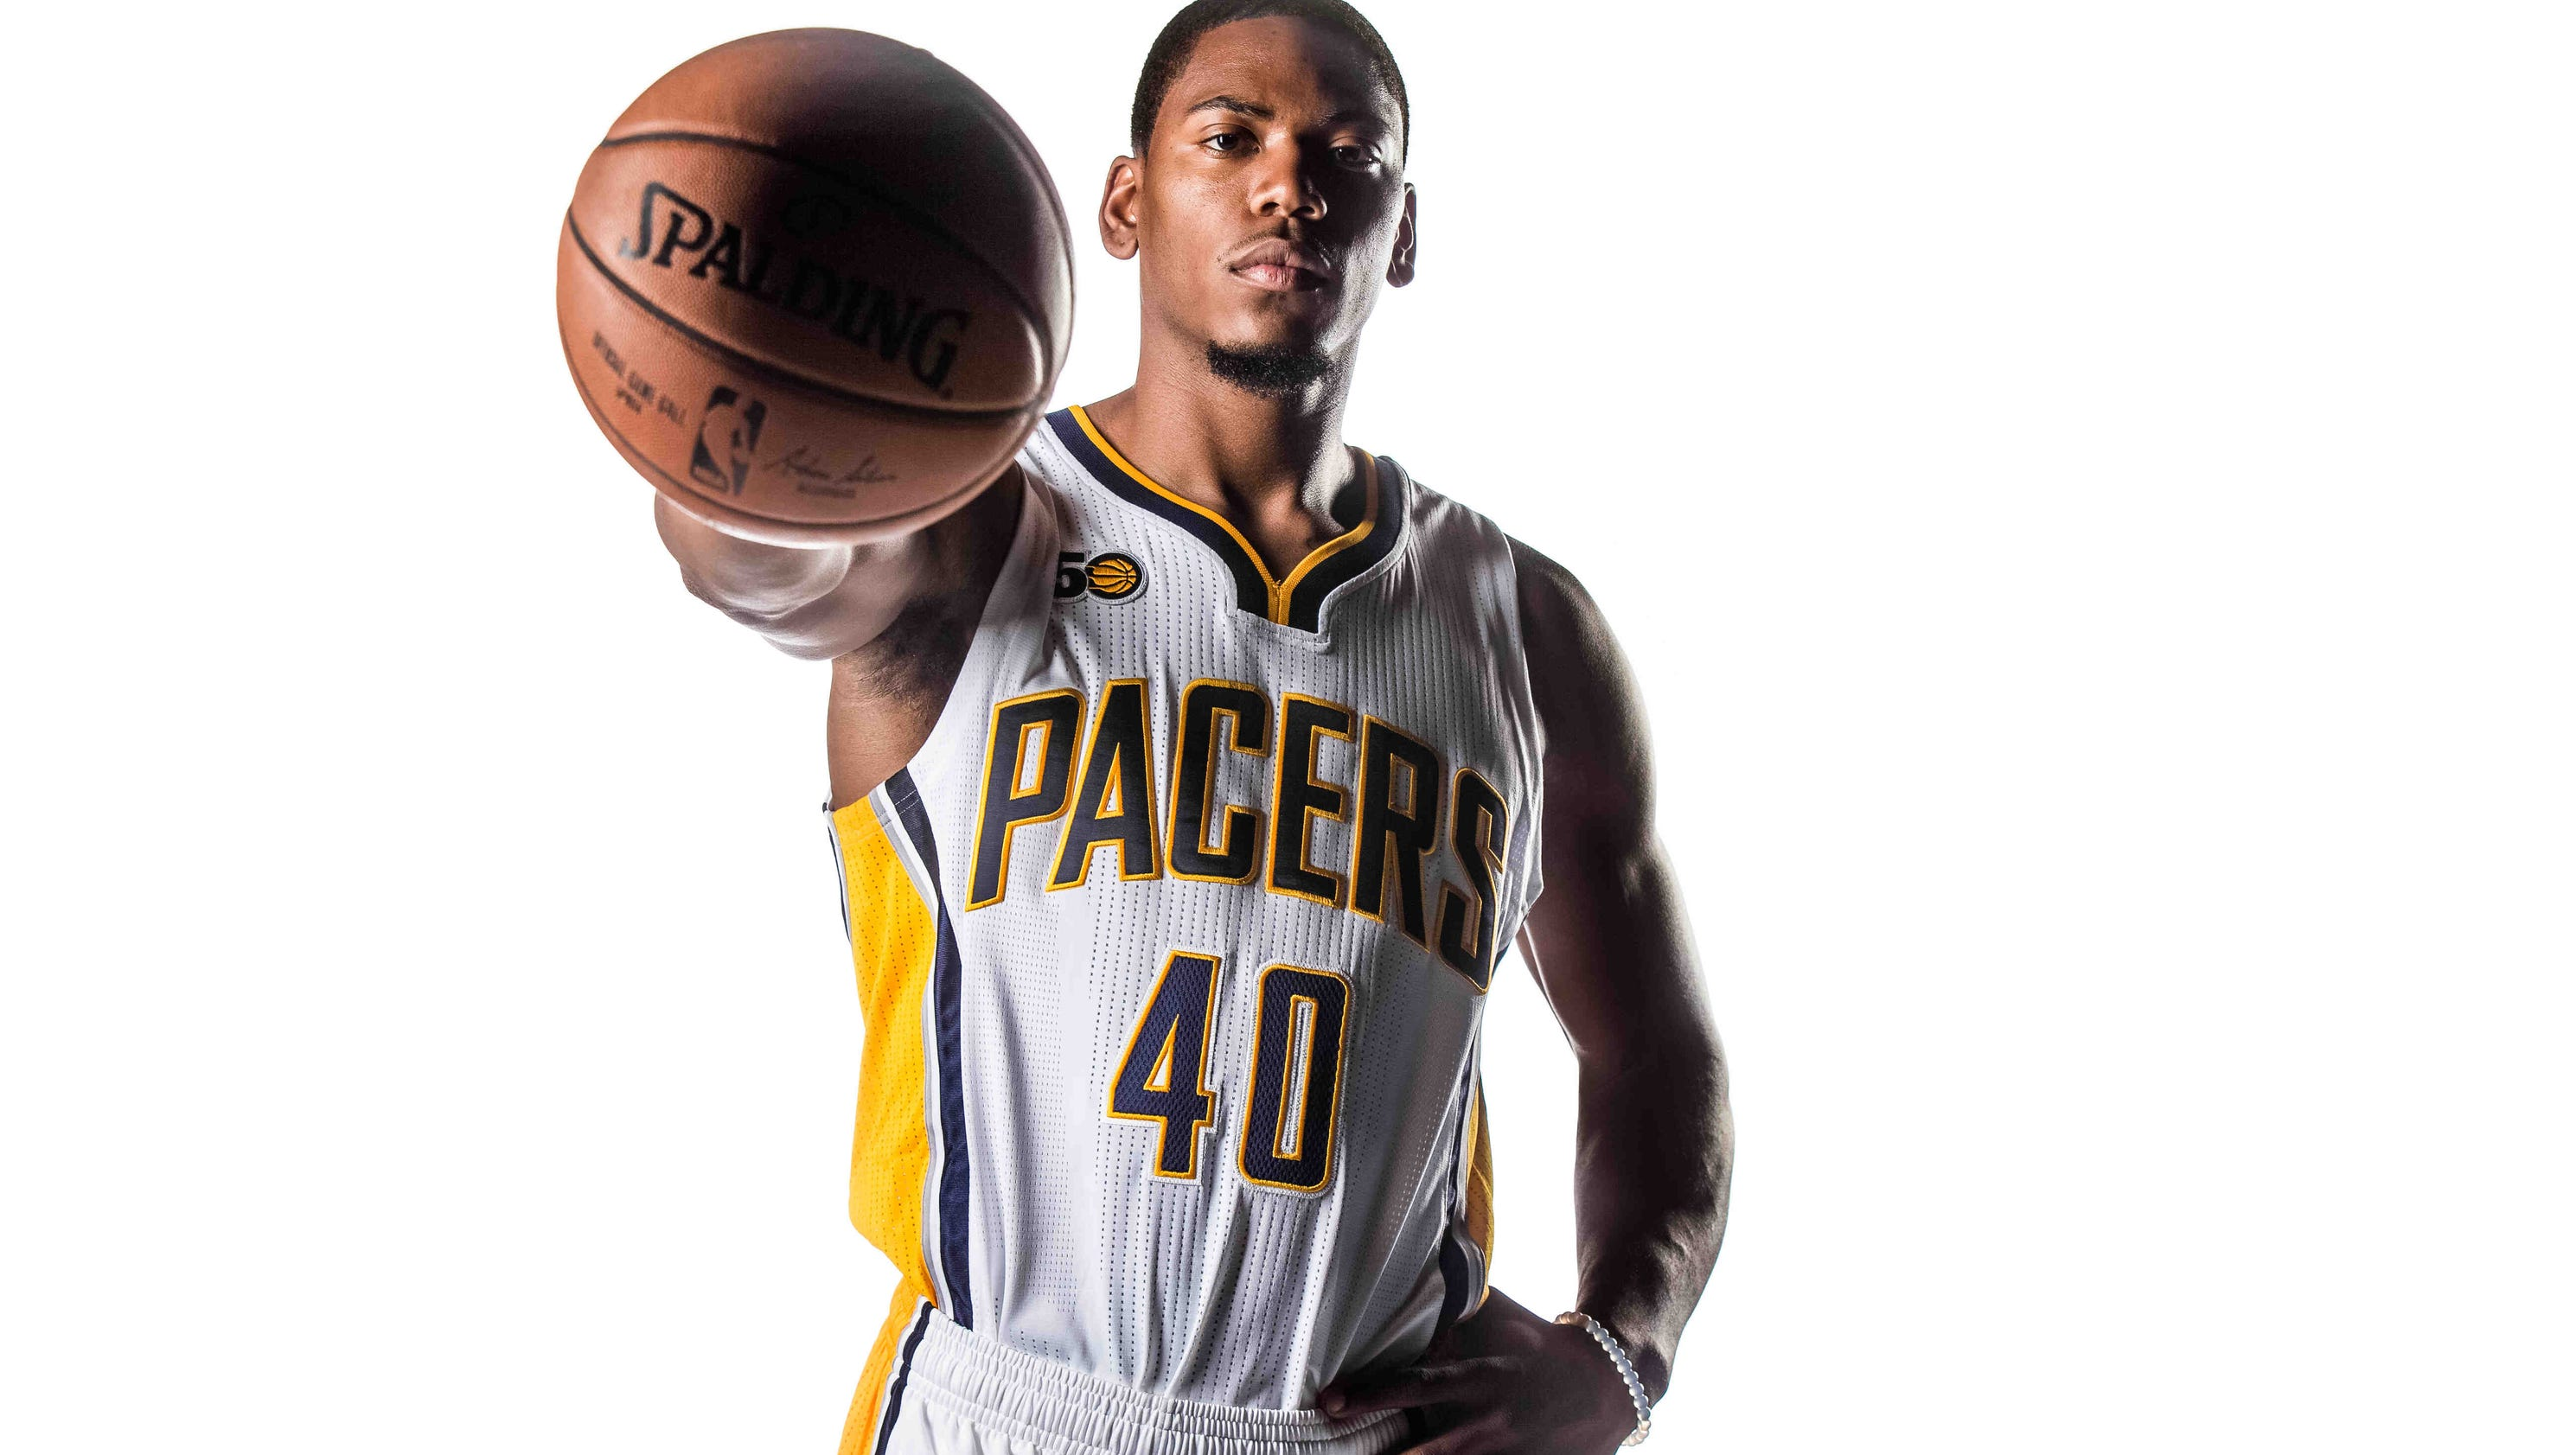 636123955530513129-006-pacers